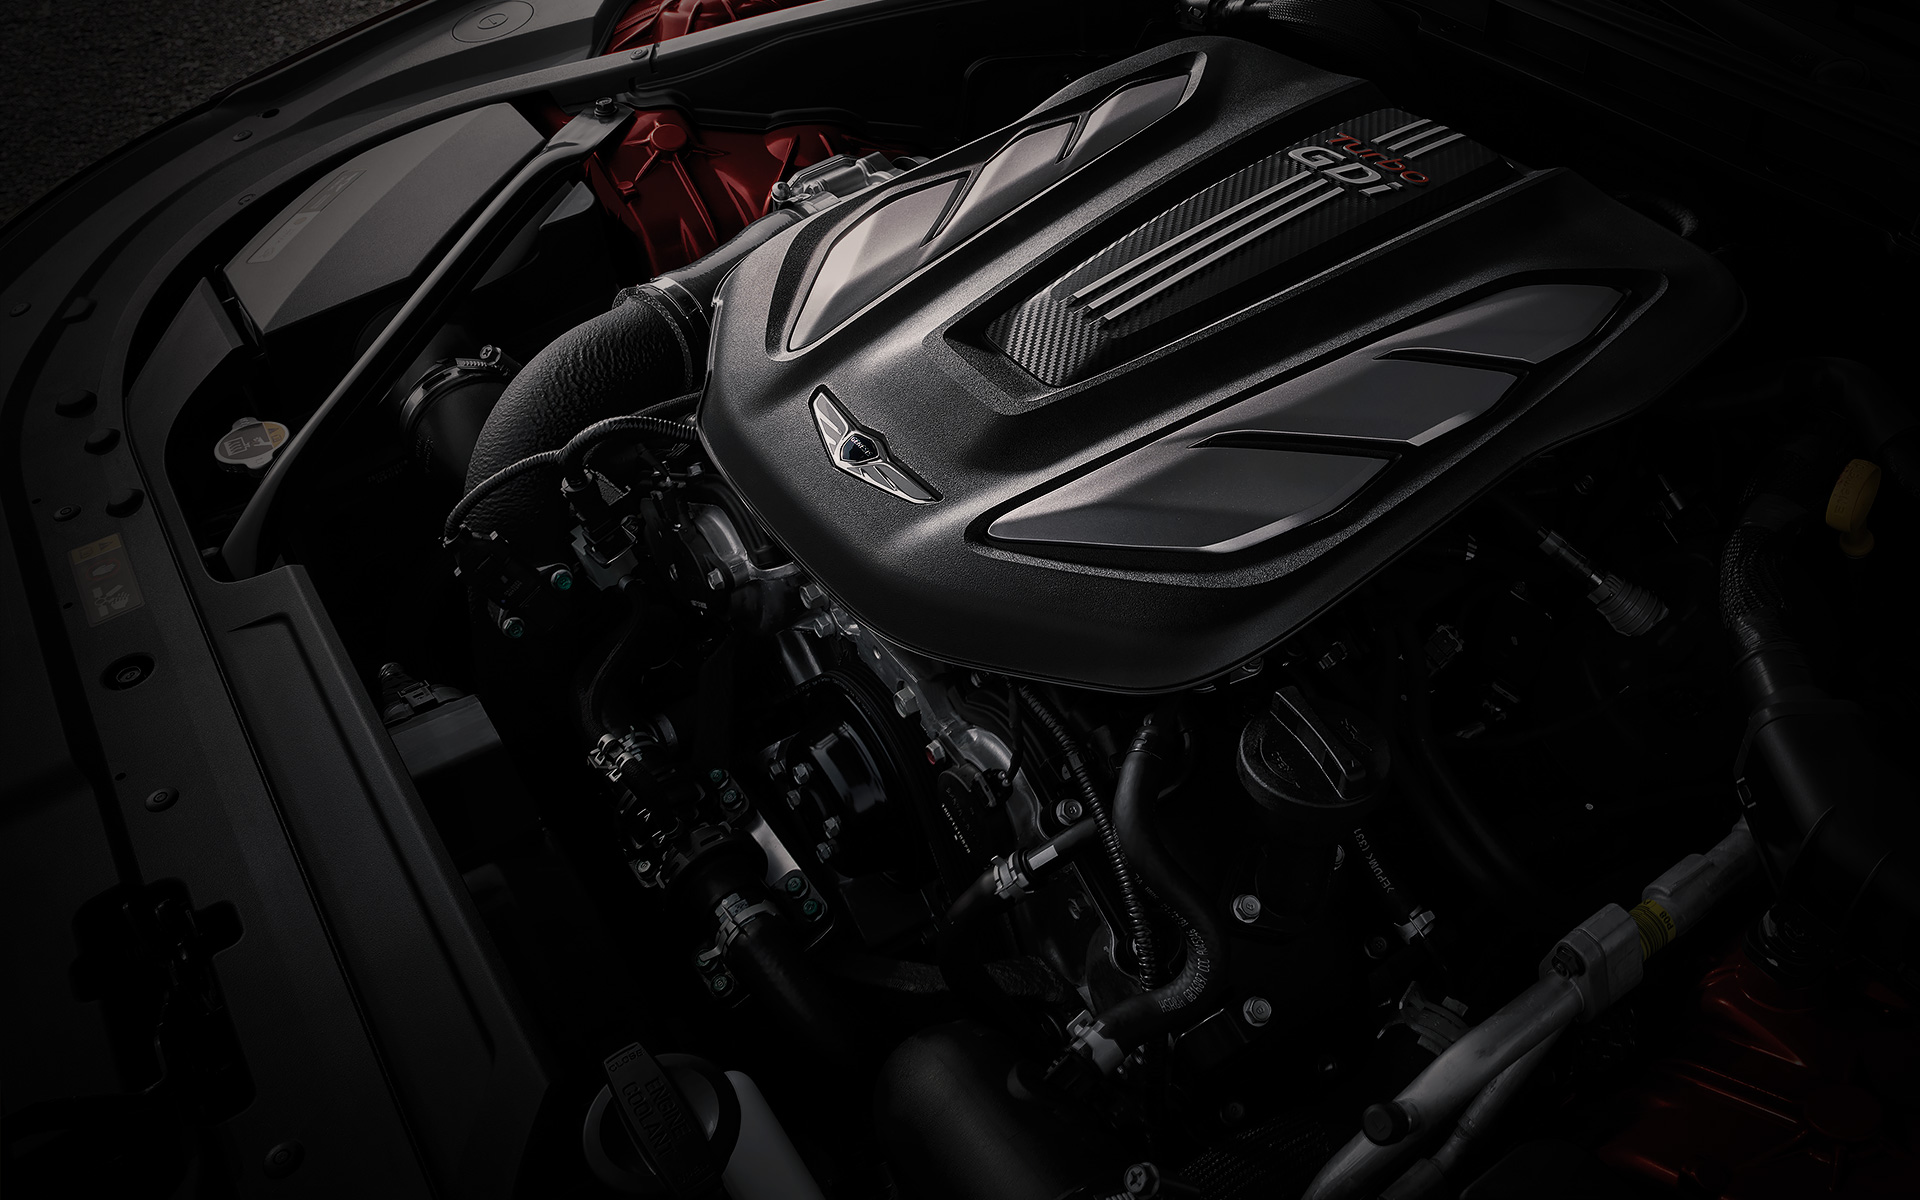 GENESIS G80 SPORT Performance Features - 3.3 V6 T-GDi Gasoline Engine